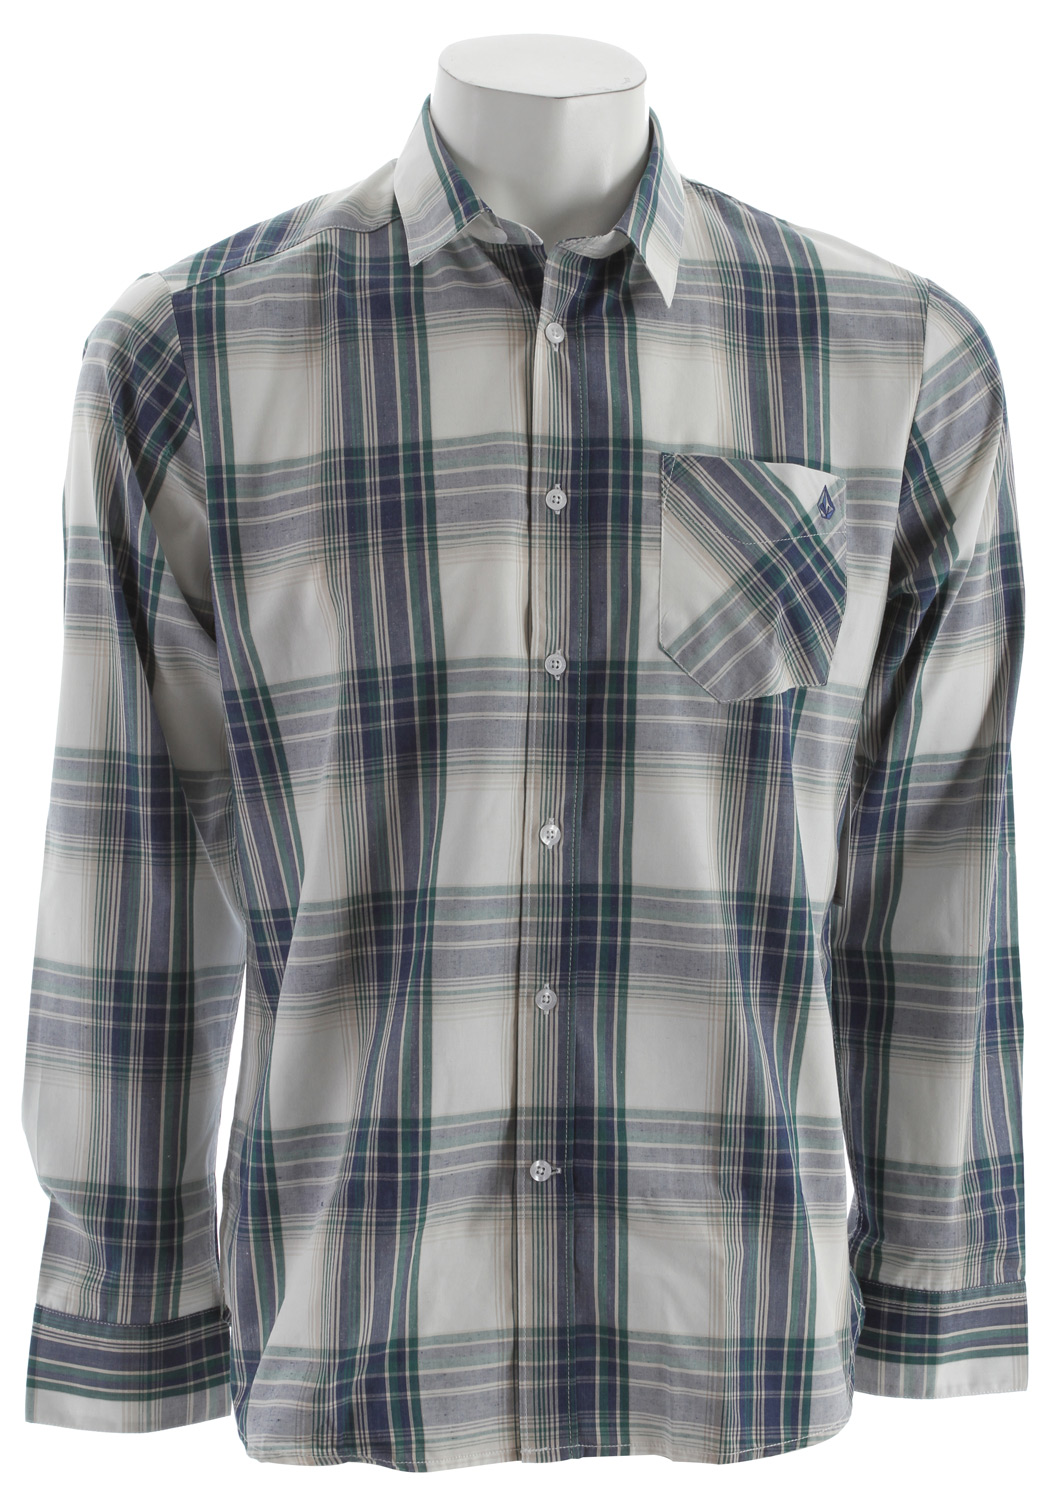 Surf Key Features of the Volcom Ex Factor Plaid L/S Shirt: Classic fit Asymmetric back yoke Front shoulder drop Stone embroidery Solids: 55% cotton/45% polyester poplin Heathered: 65% polyester/ 35% cotton poplin - $34.95